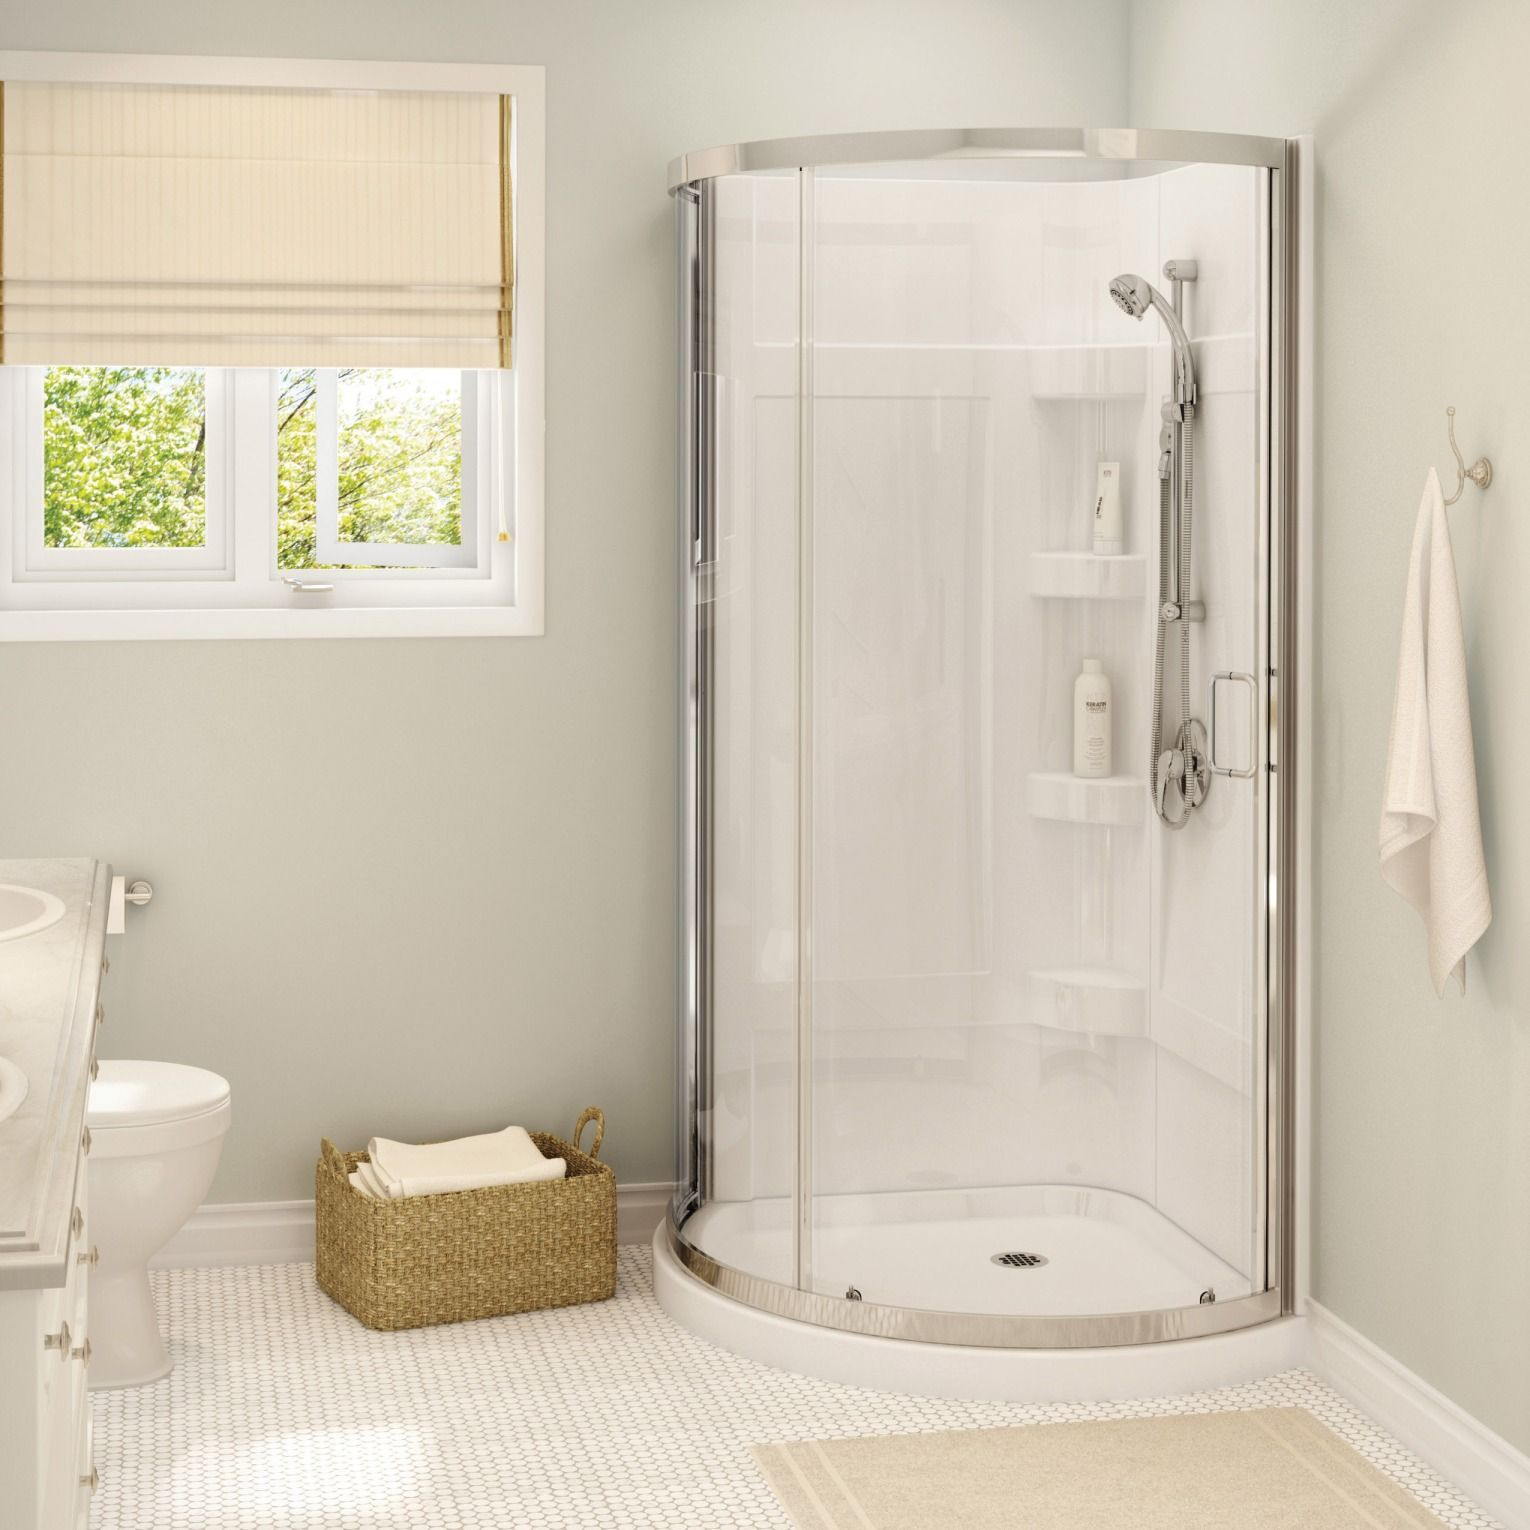 The Maax Cyrene Shower Kit Combines Simplicity And Elegance Featuring An Aluminum Chrome Frame And A Cle Corner Shower Kits Corner Shower Corner Shower Units